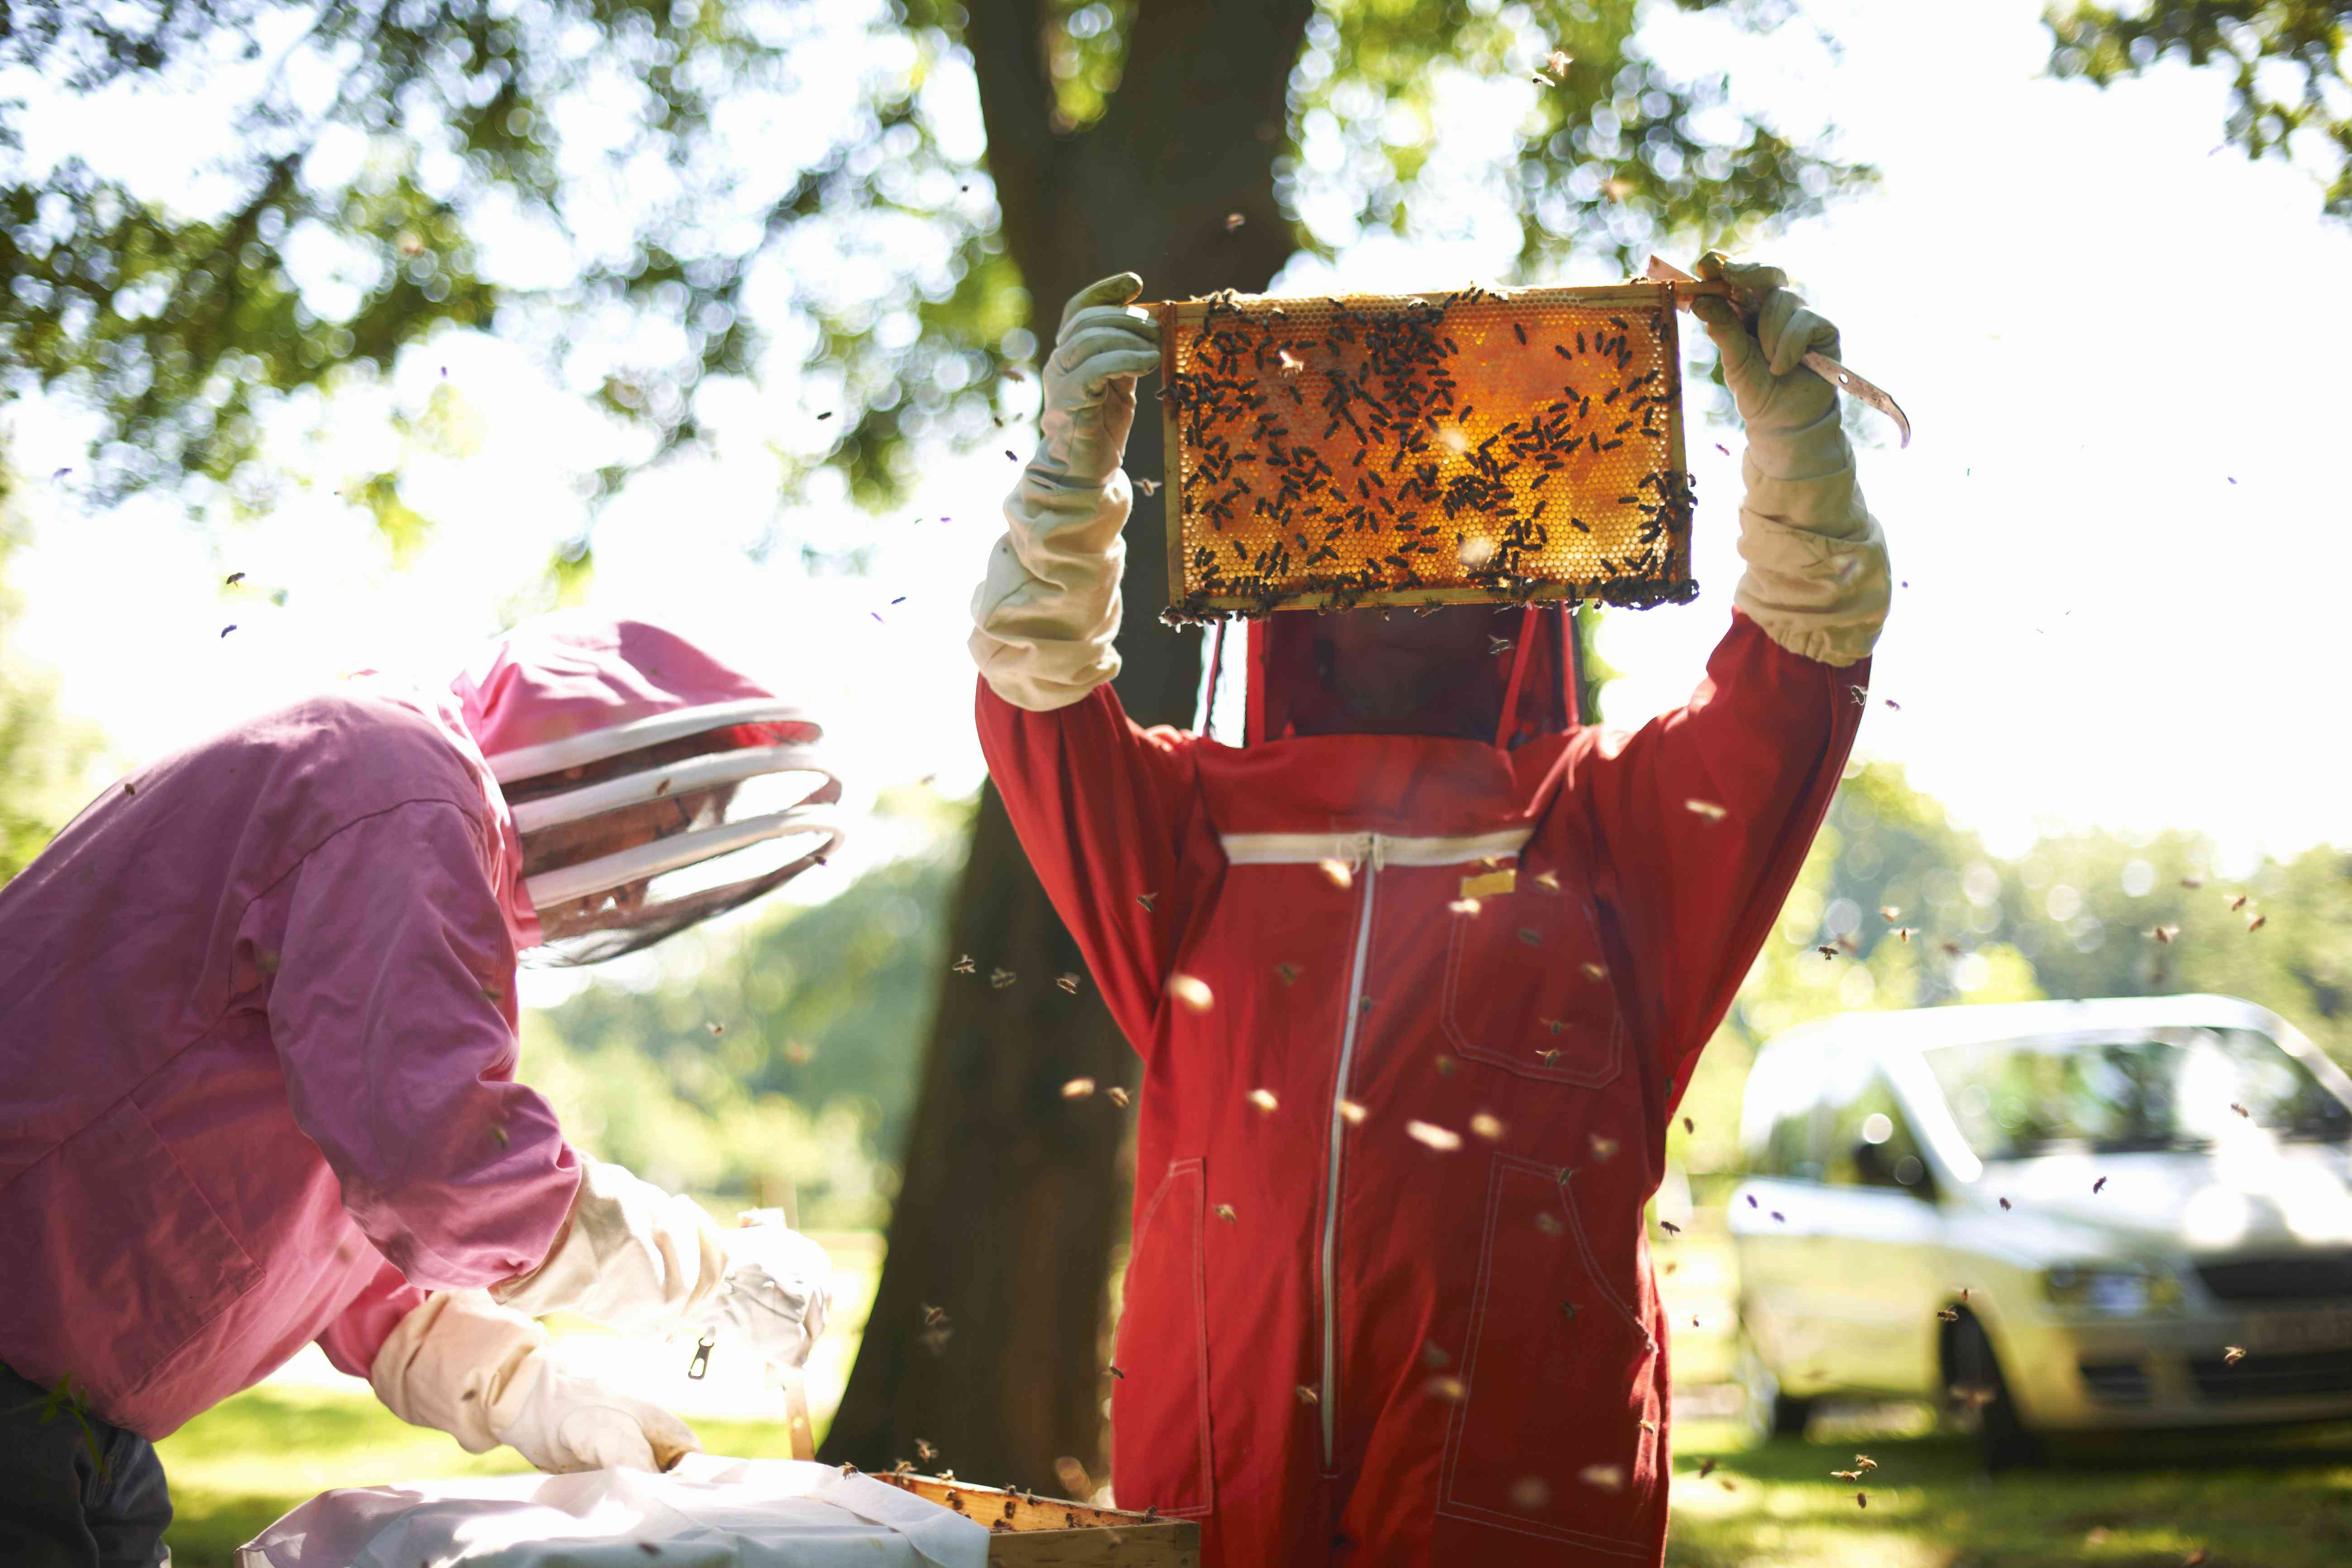 Two beekeepers lifting frame from bee hive